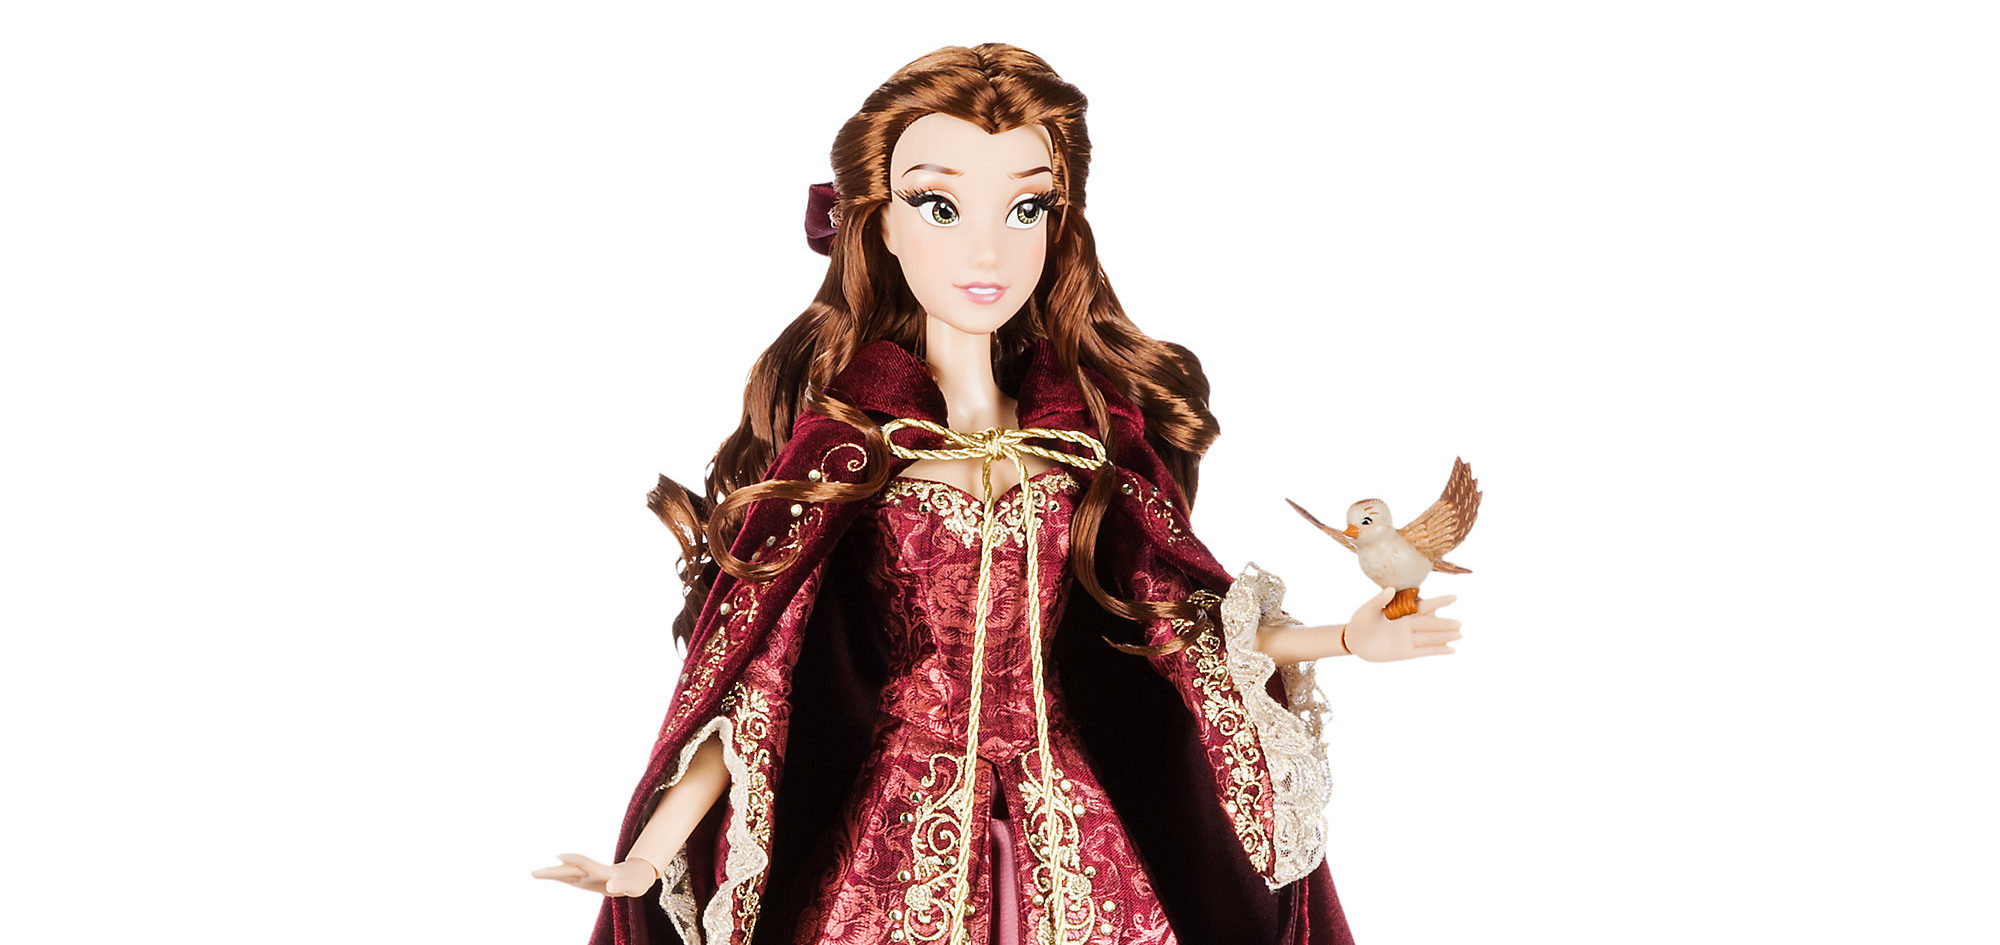 """Disney Store Announces Limited Edition """"Beauty and the Beast"""" Dolls"""